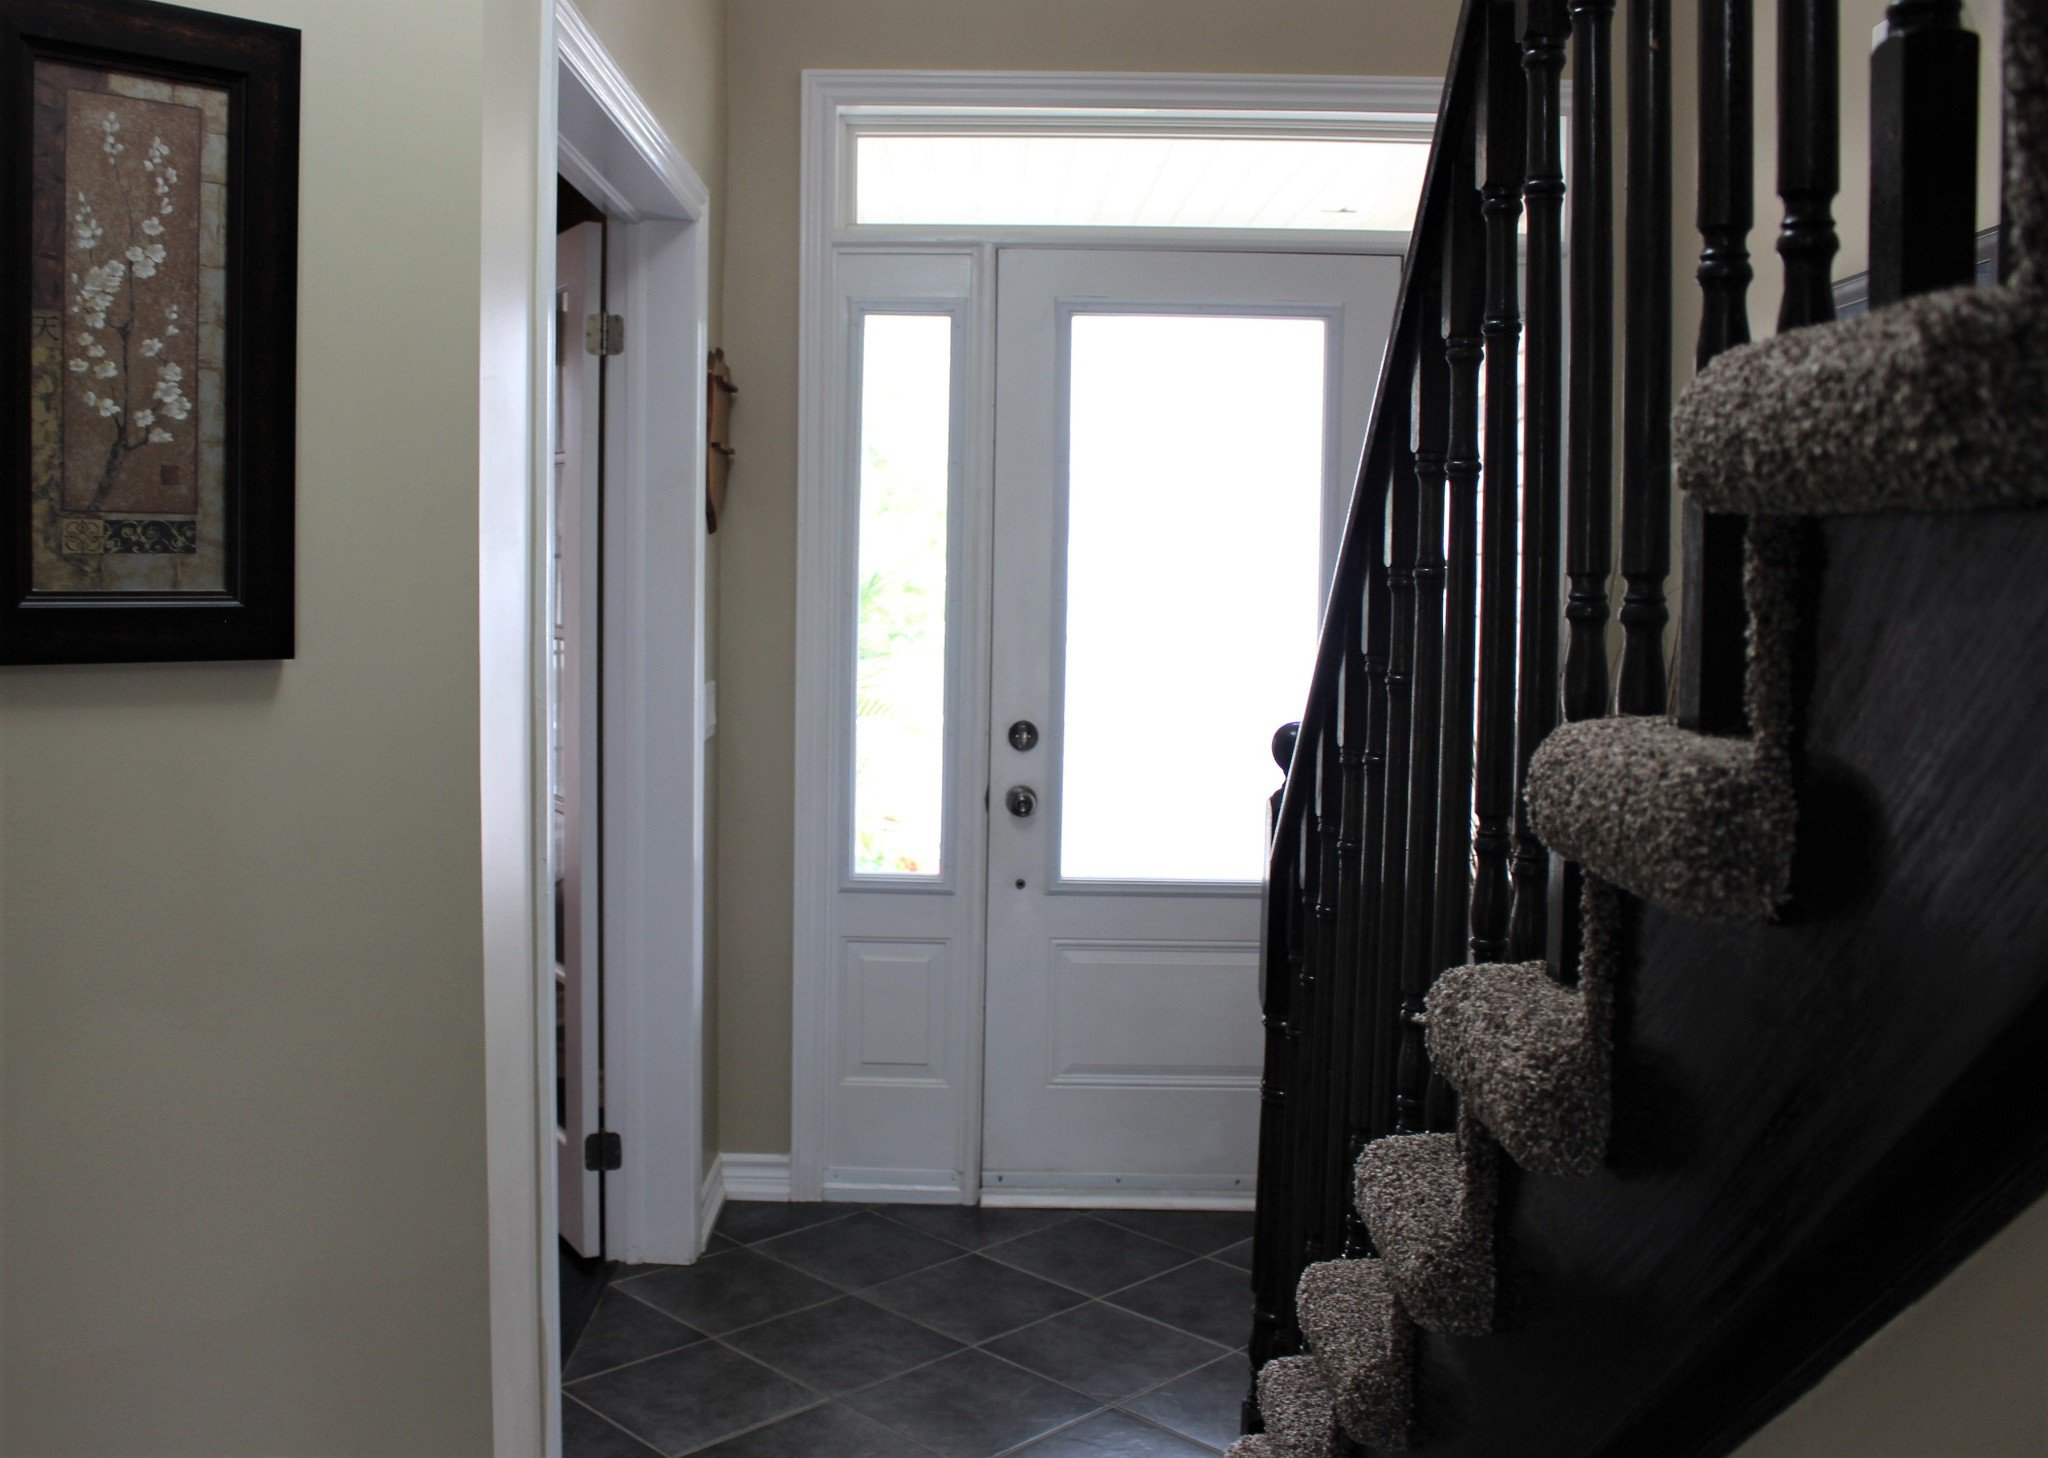 Photo 6: Photos: 716 Prince of Wales Drive in Cobourg: Residential Detached for sale : MLS®# 209153